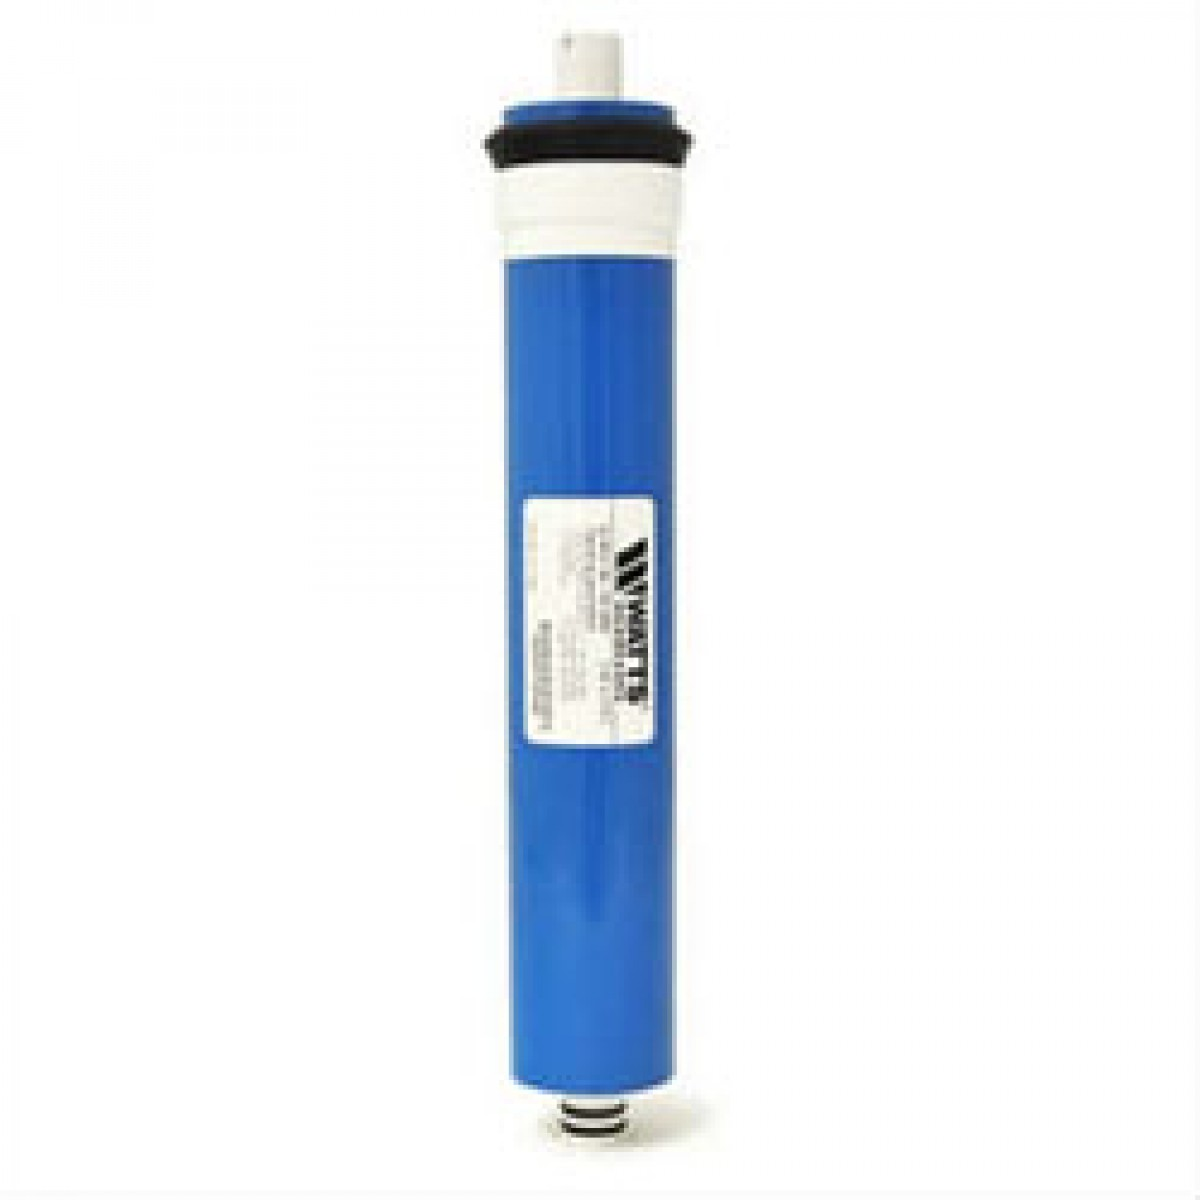 Watts W 1812 24 Replacement Reverse Osmosis Membrane